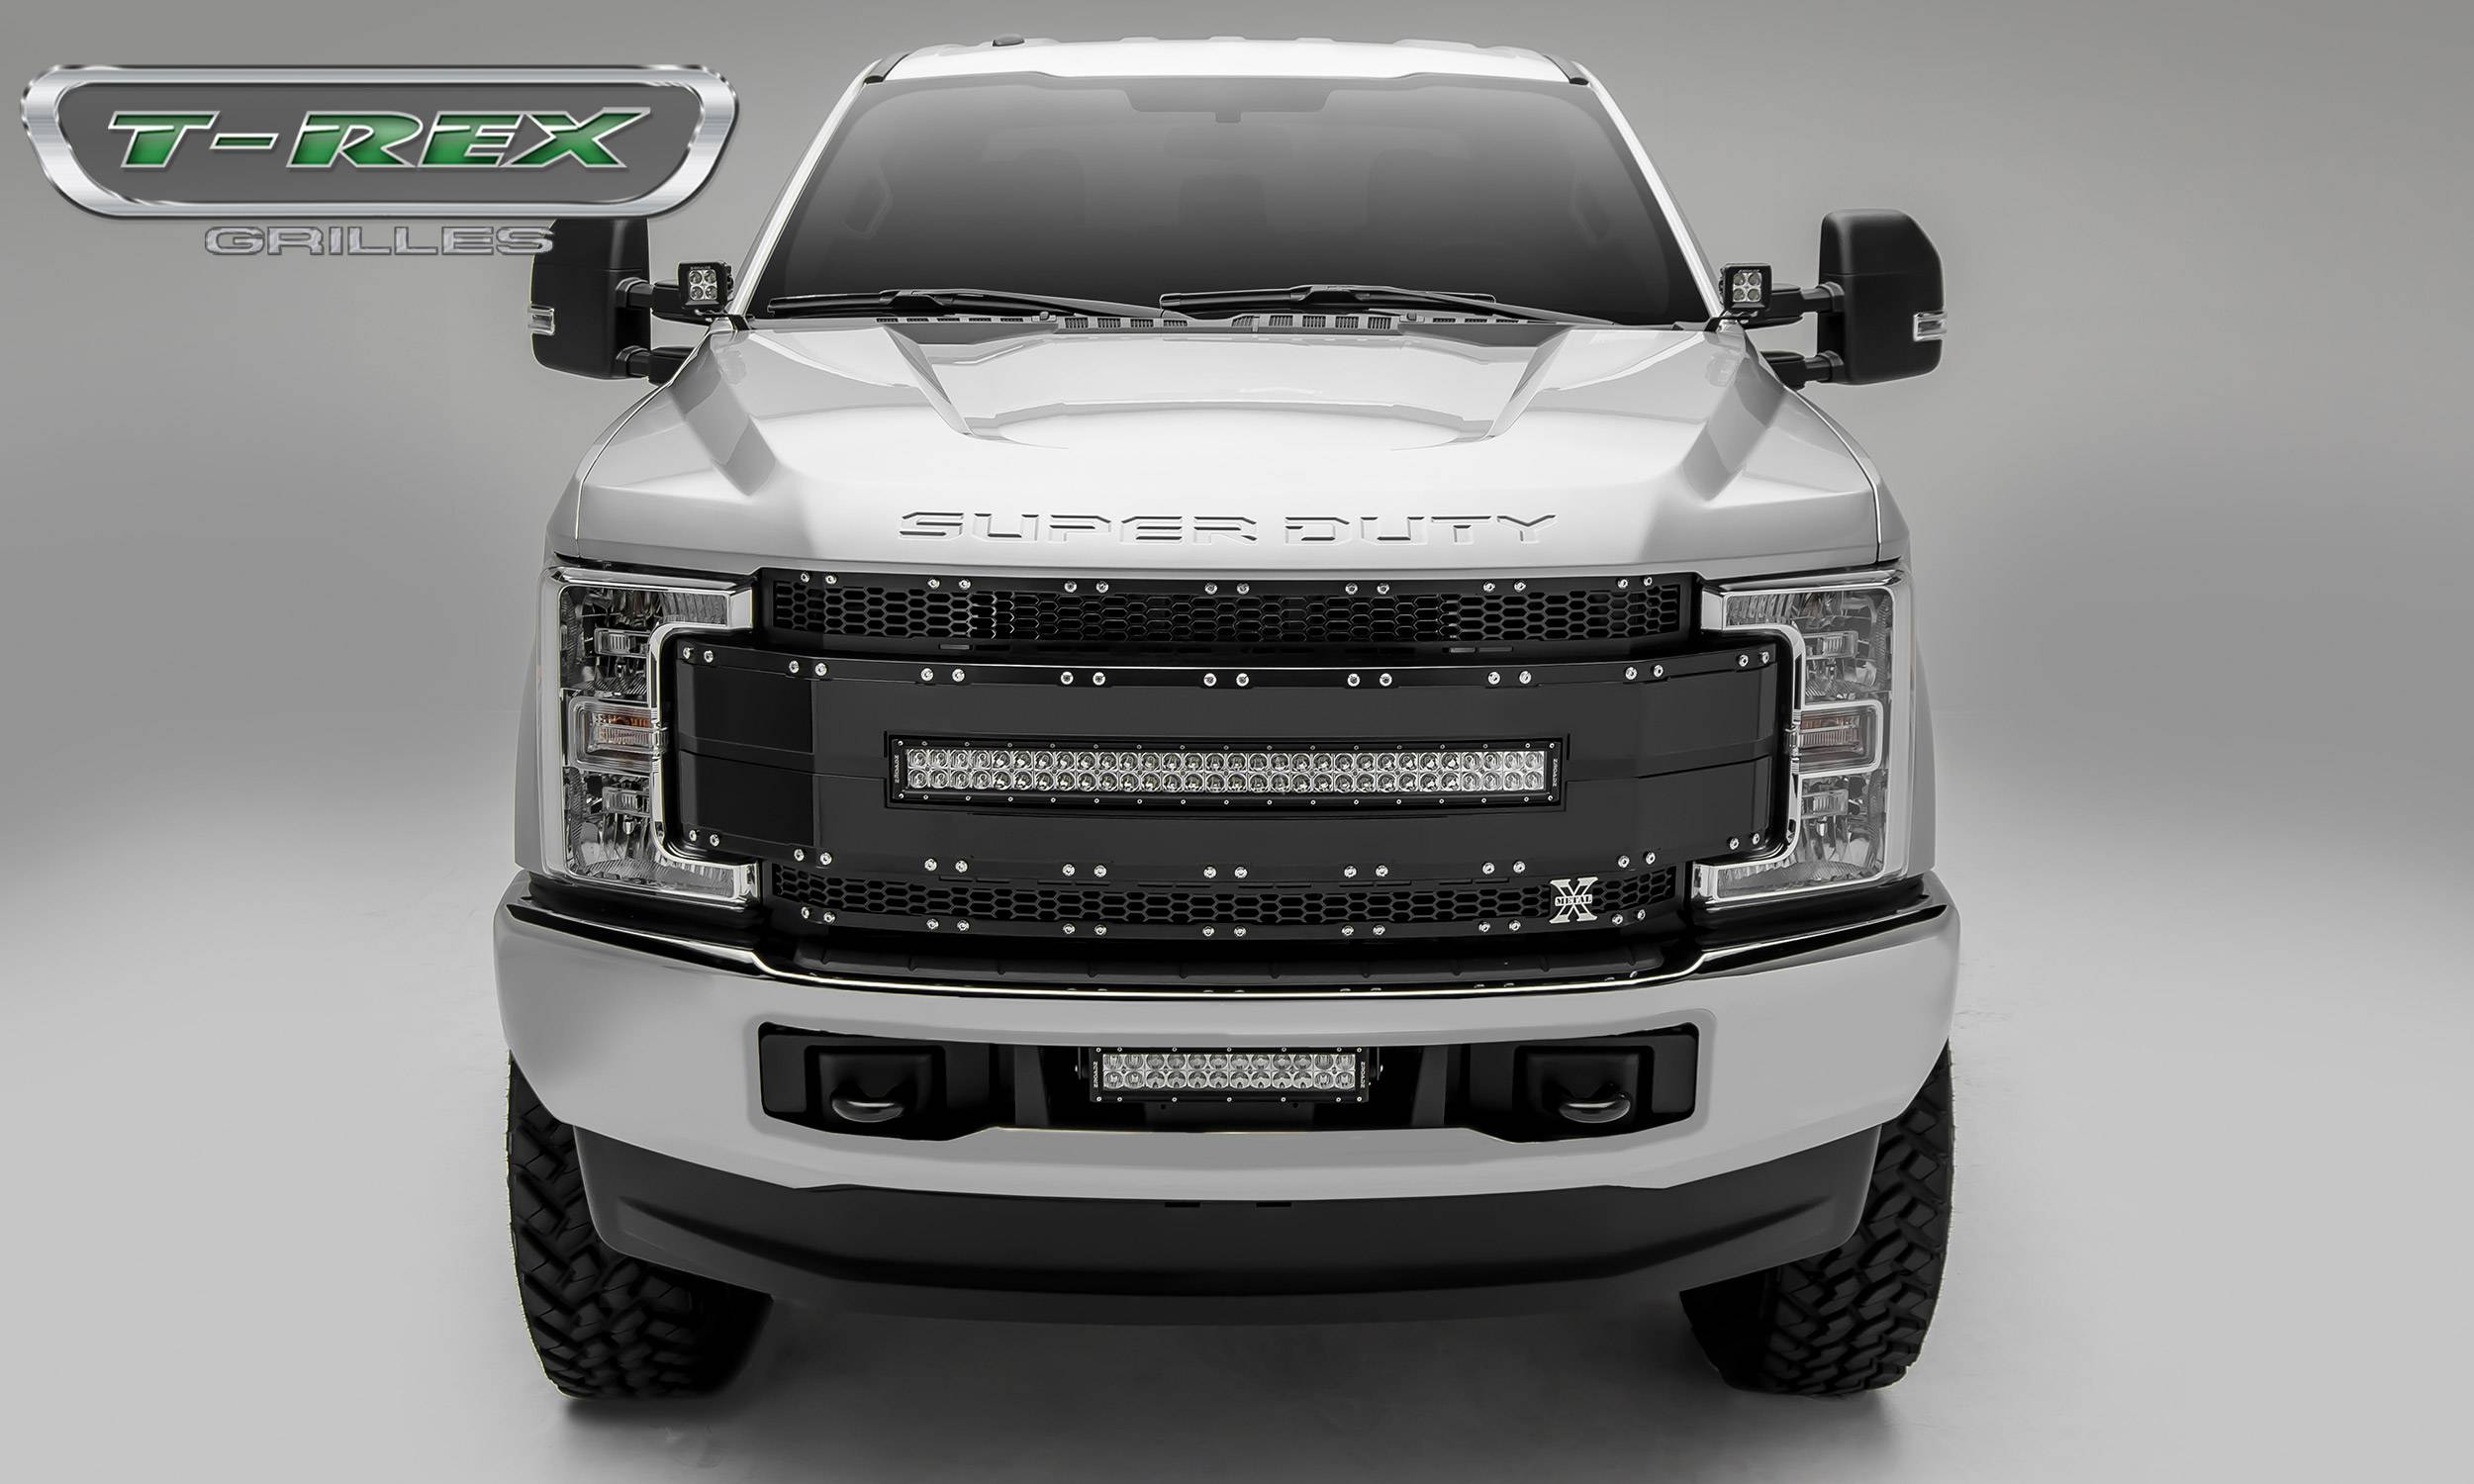 T rex ford f 250 f 350 super duty torch al series main replacement grille 1 30 led light bar black w black mesh black trim pt 6315481